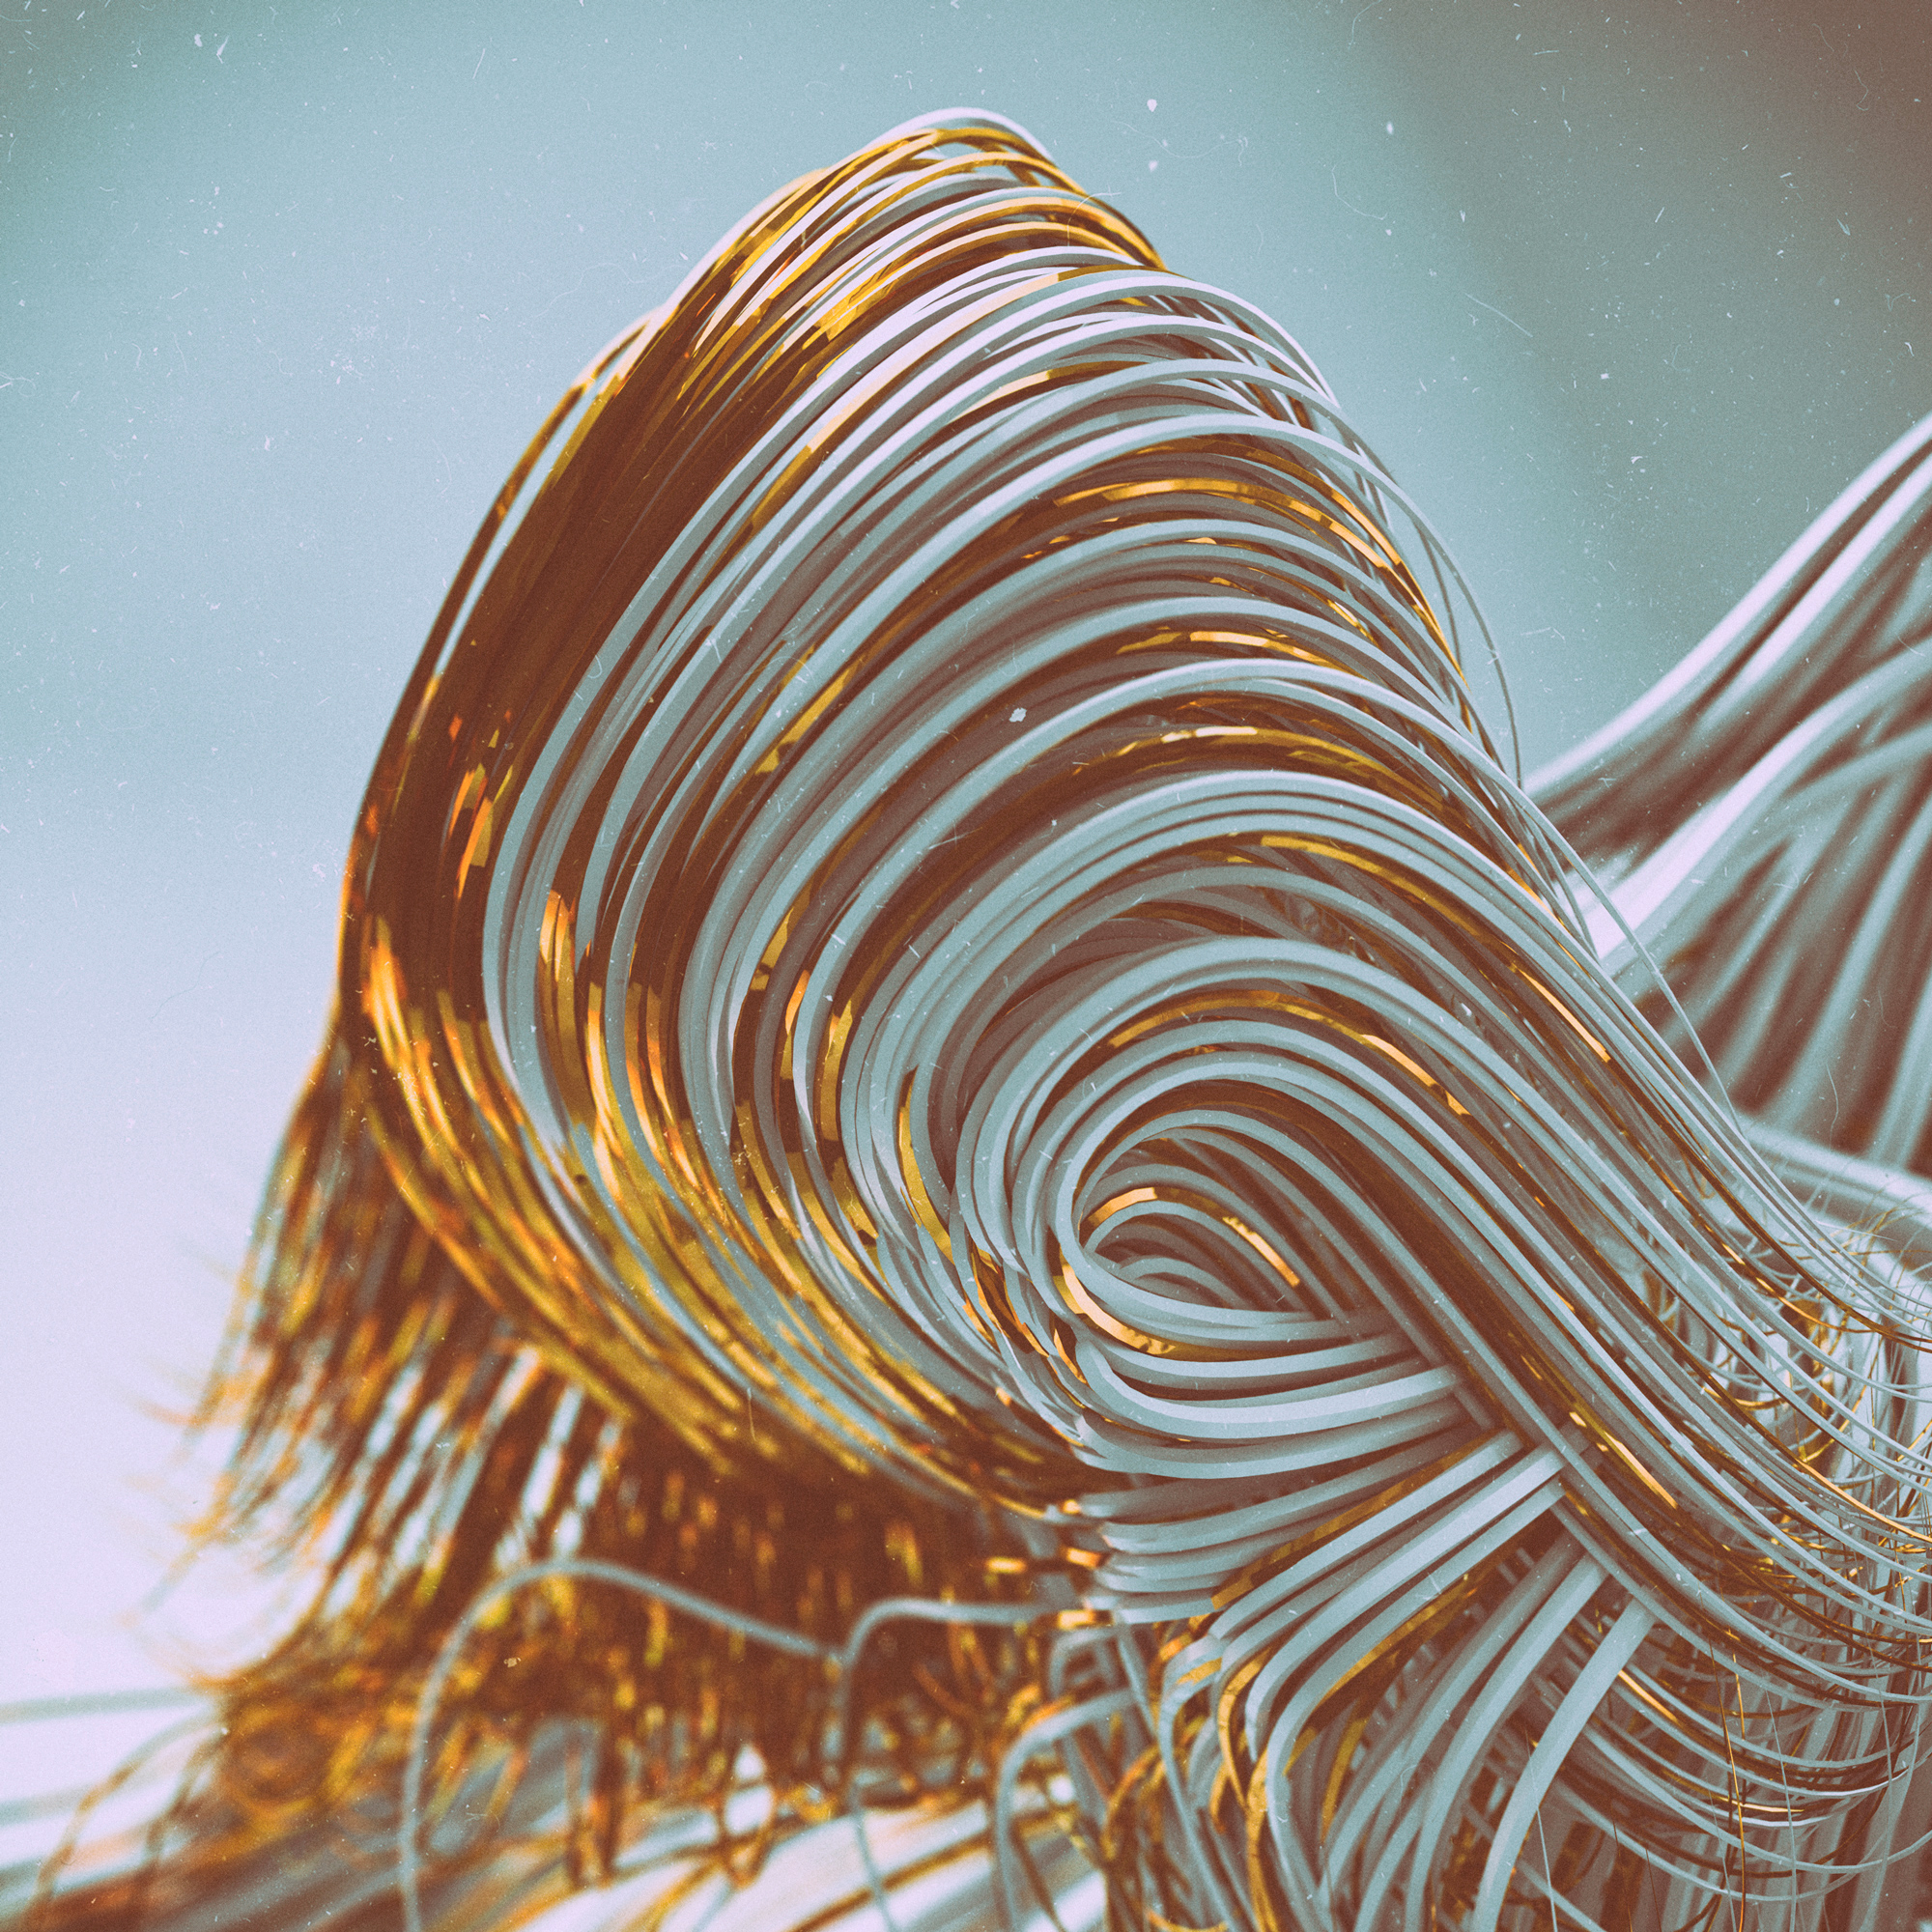 Daily Renders On Behance - 3d rendered experimental artworks